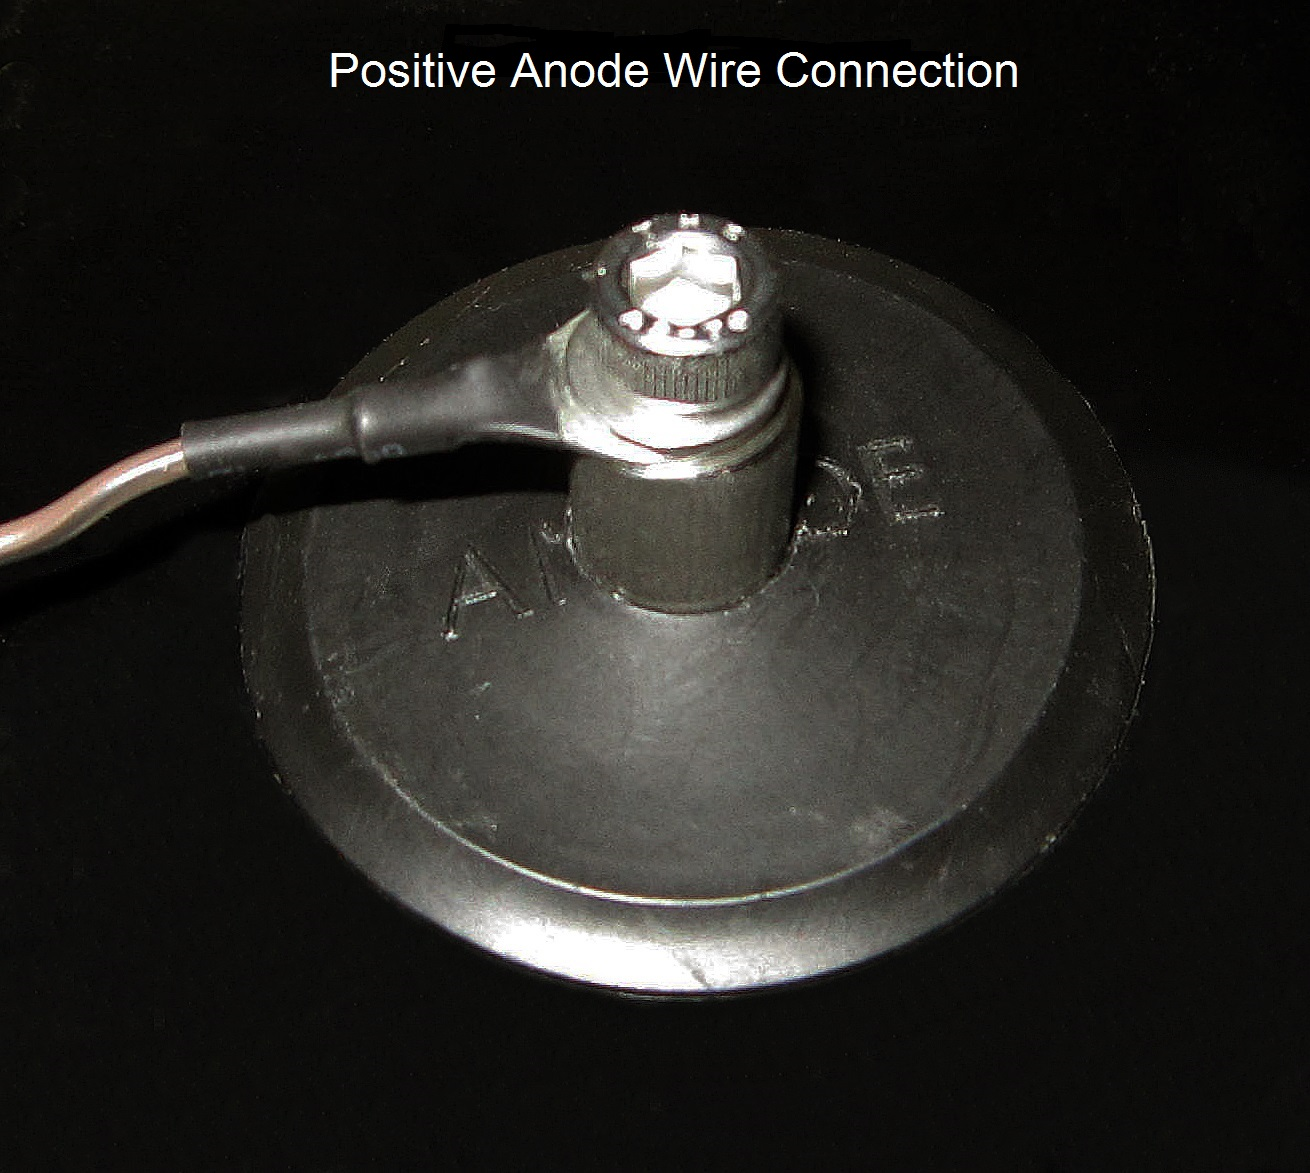 Recessed Anode Connection